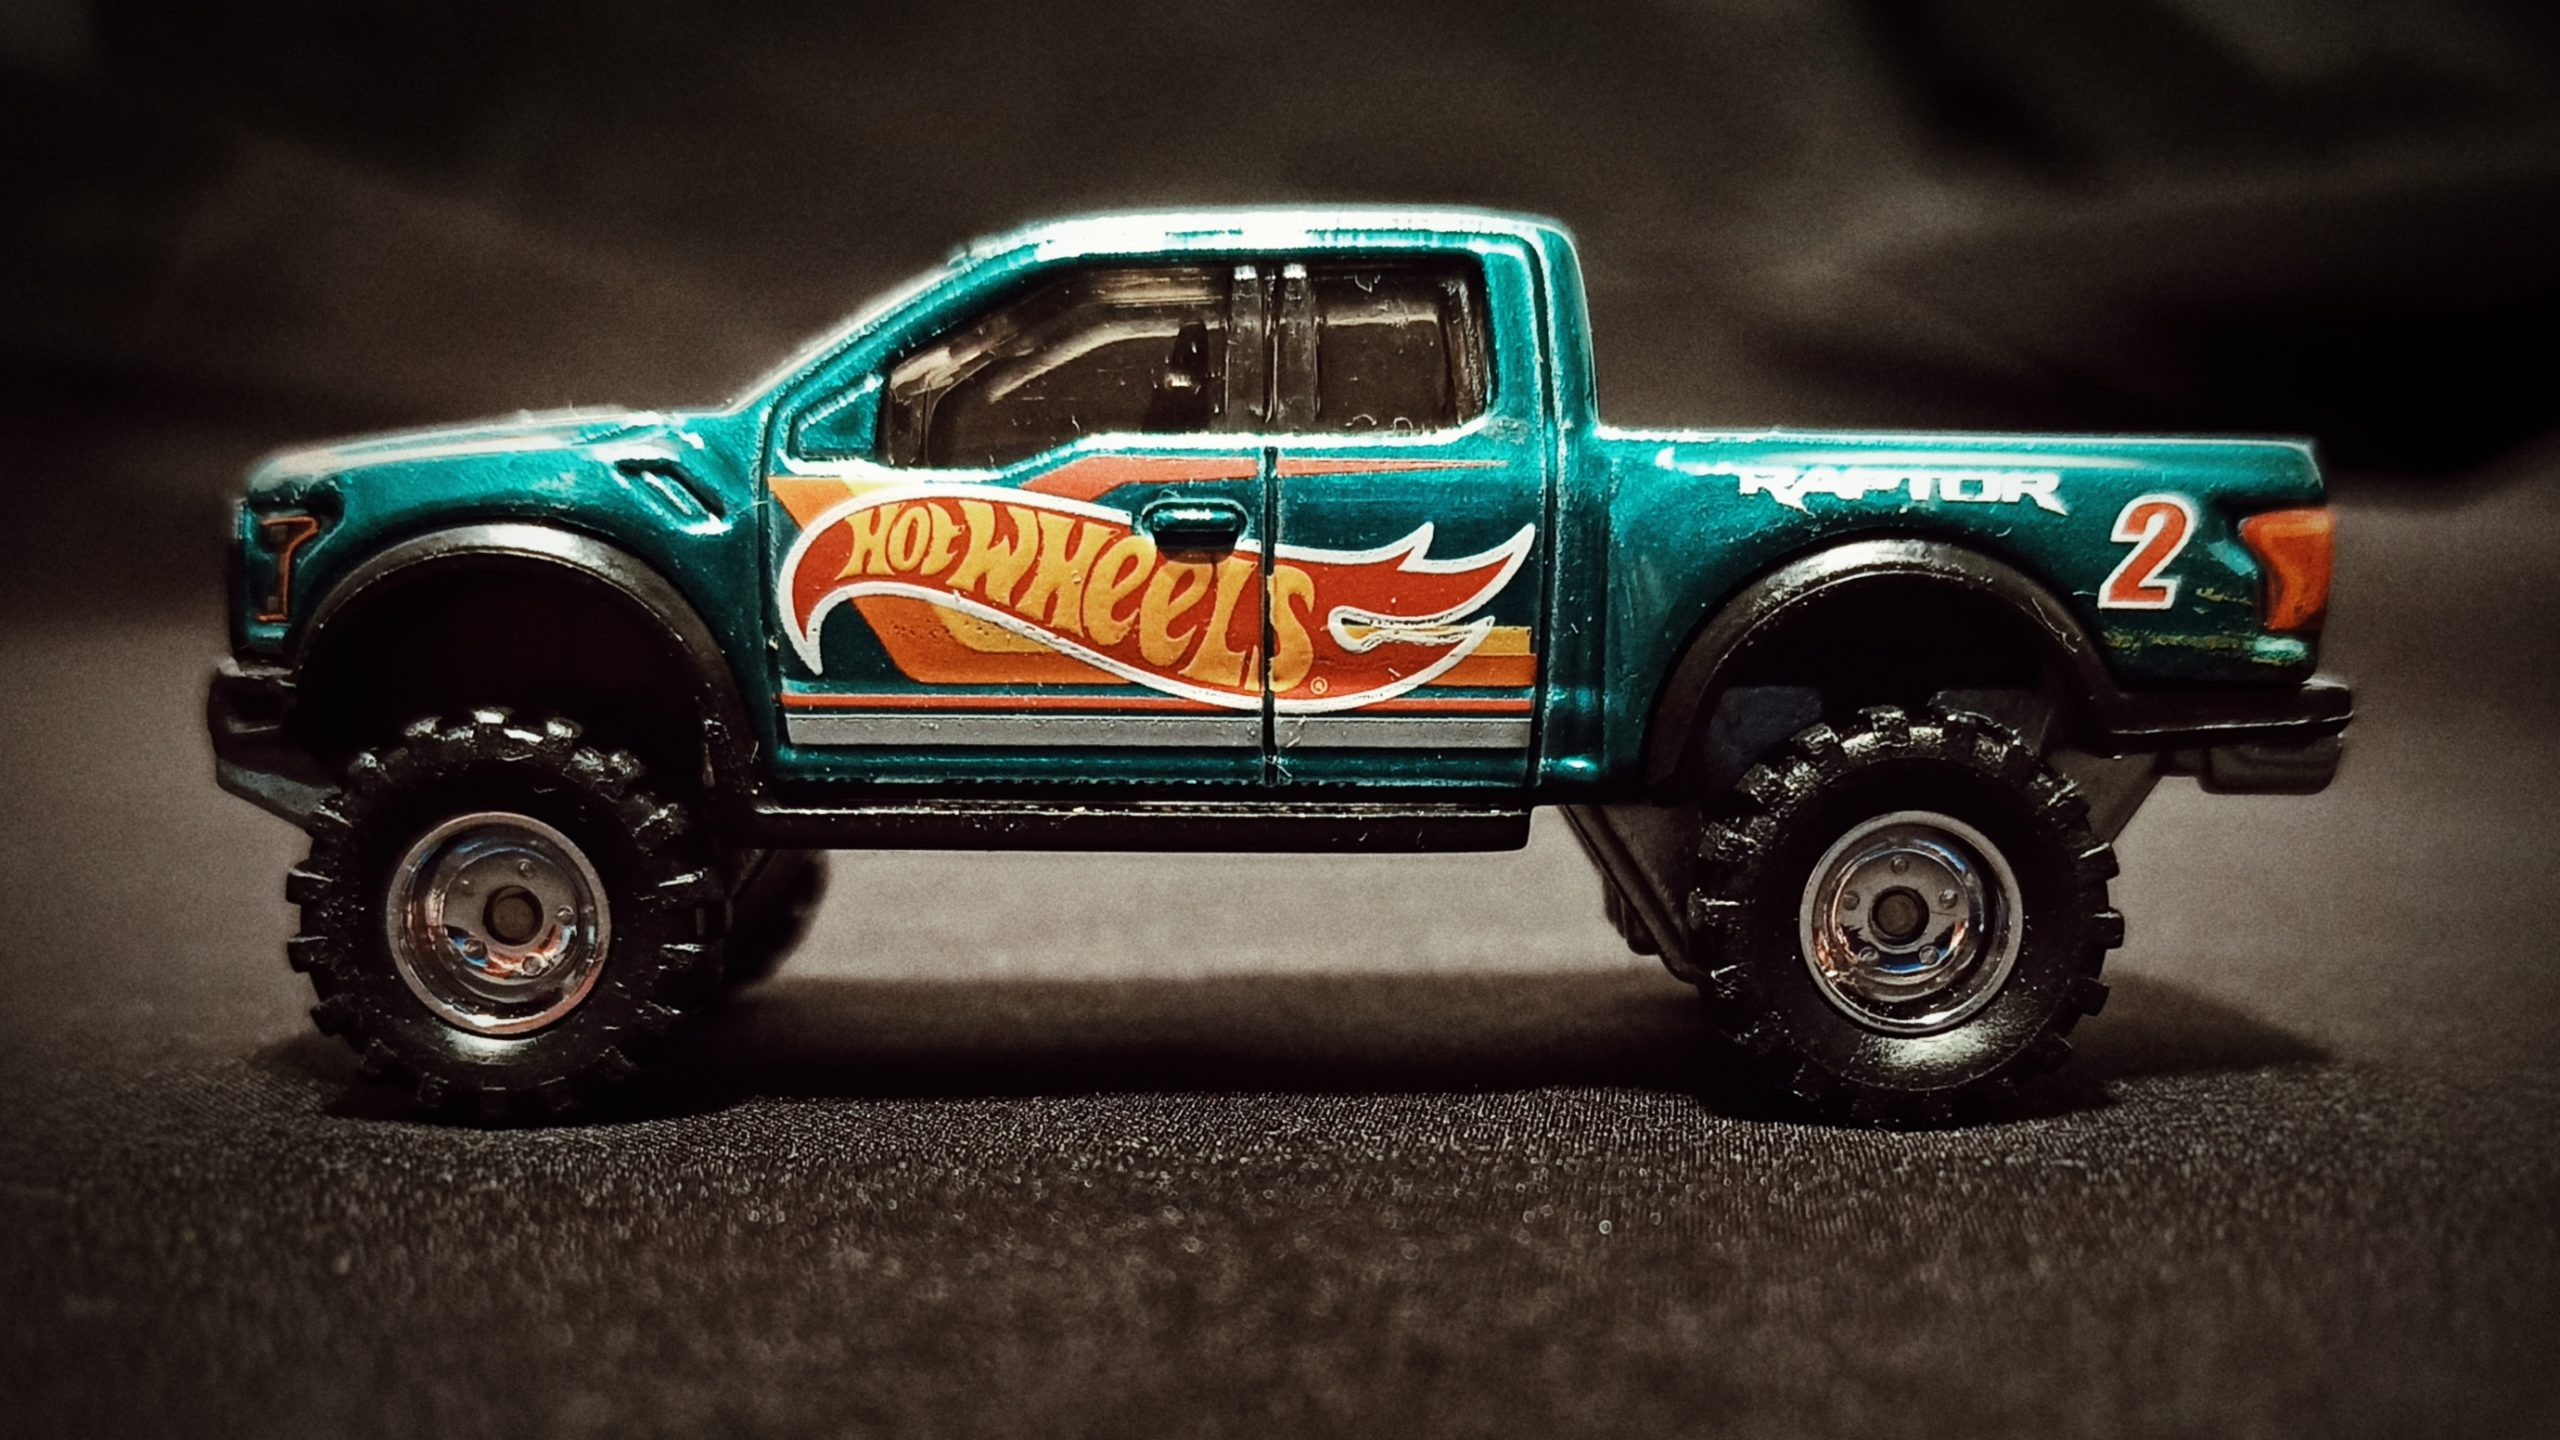 Hot Wheels '17 Ford F-150 Raptor (GTD72) 2021 Collector Edition (Dollar General Mail-in) spectraflame aqua green side